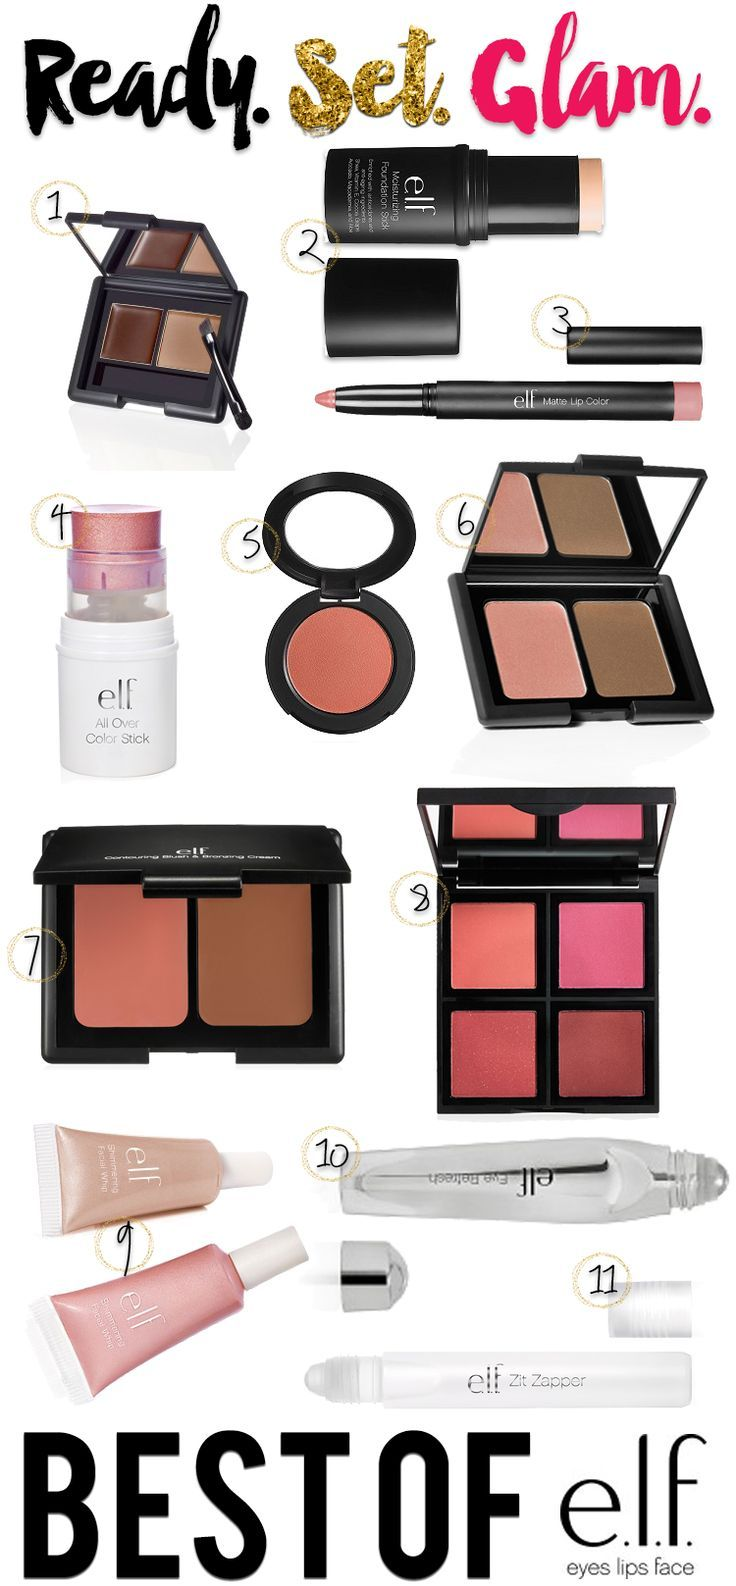 If you're looking for amazing, great quality makeup on the cheap, then you need to check out the best Elf products and get your shop on! (Best Blush For Medium)